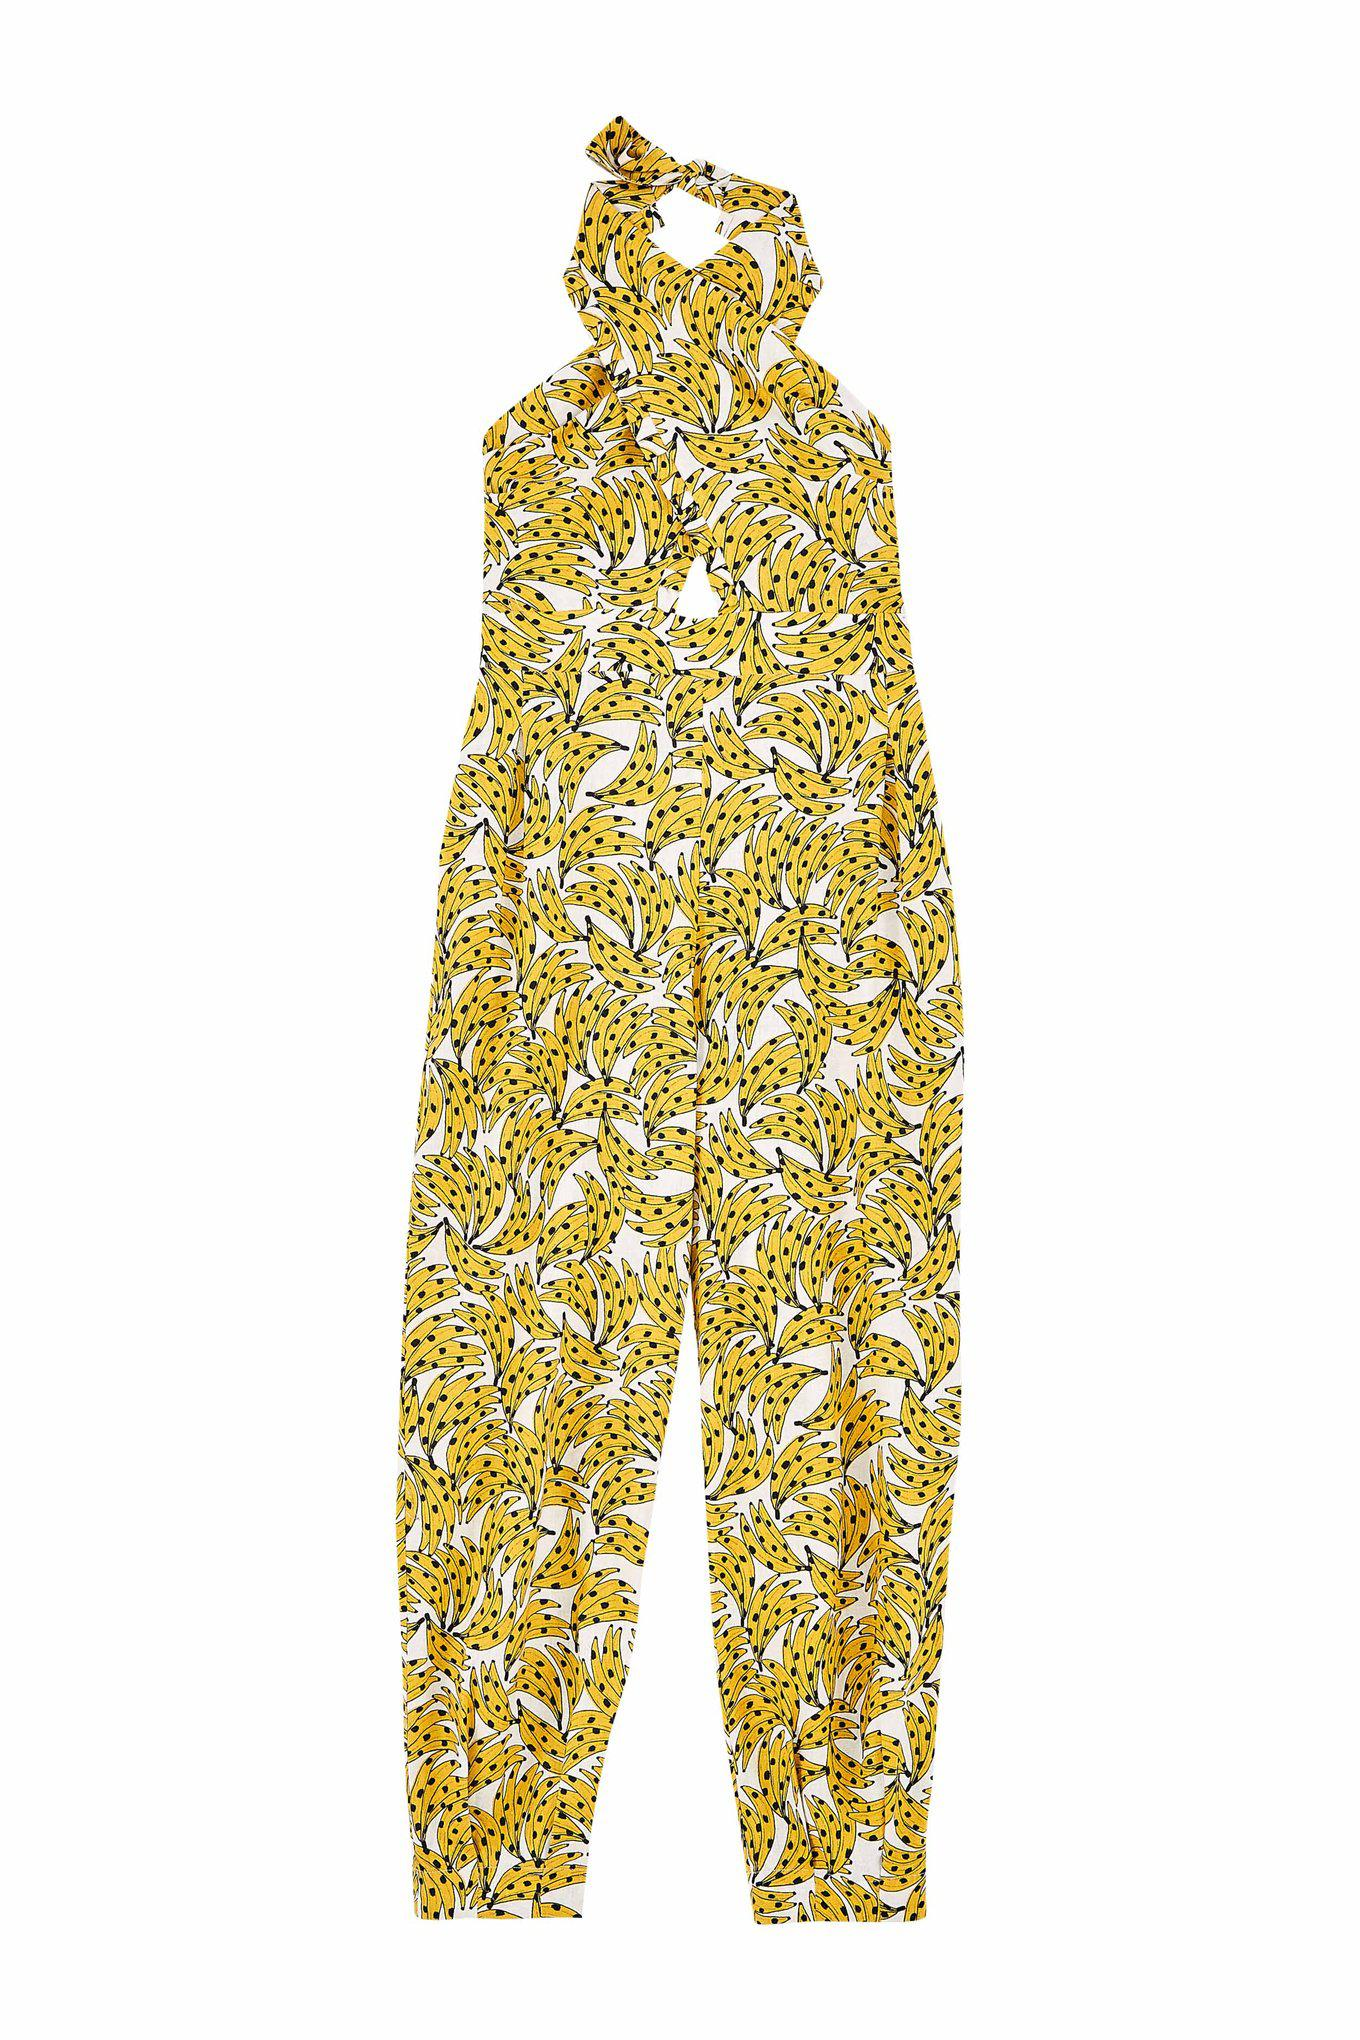 White Spotted Bananas Jumpsuit 4